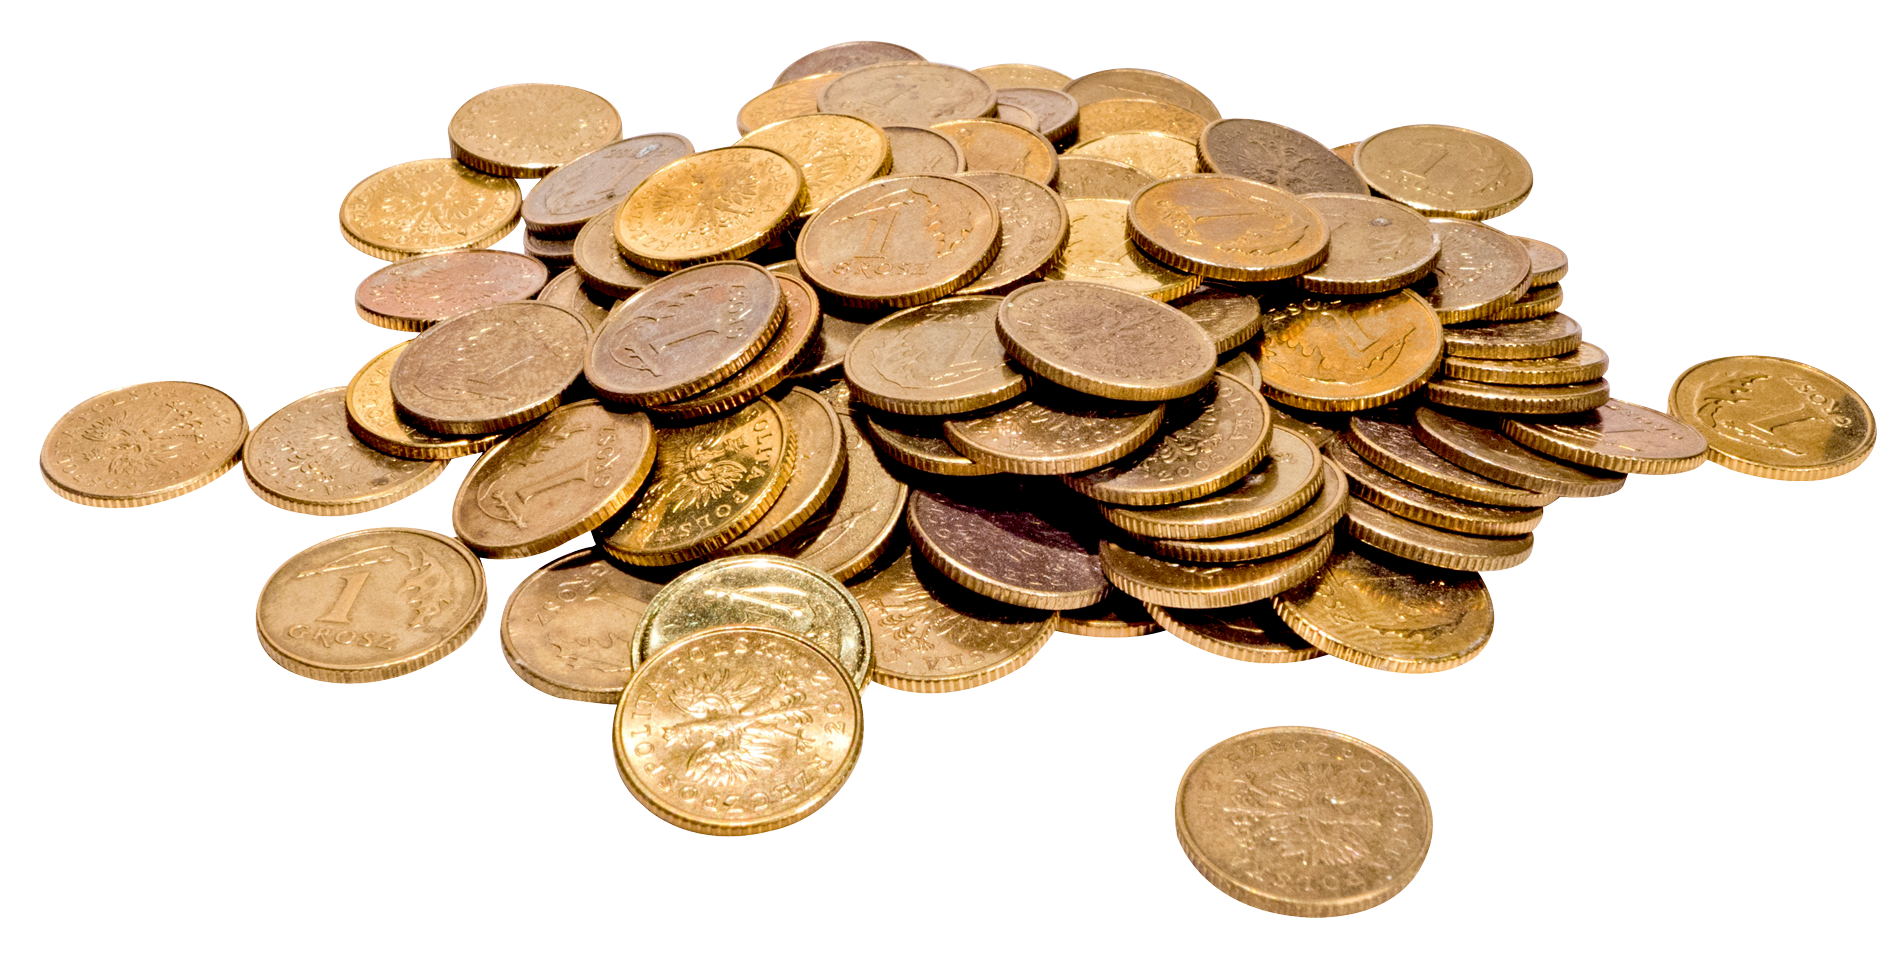 Coin .png. Coins png transparent images